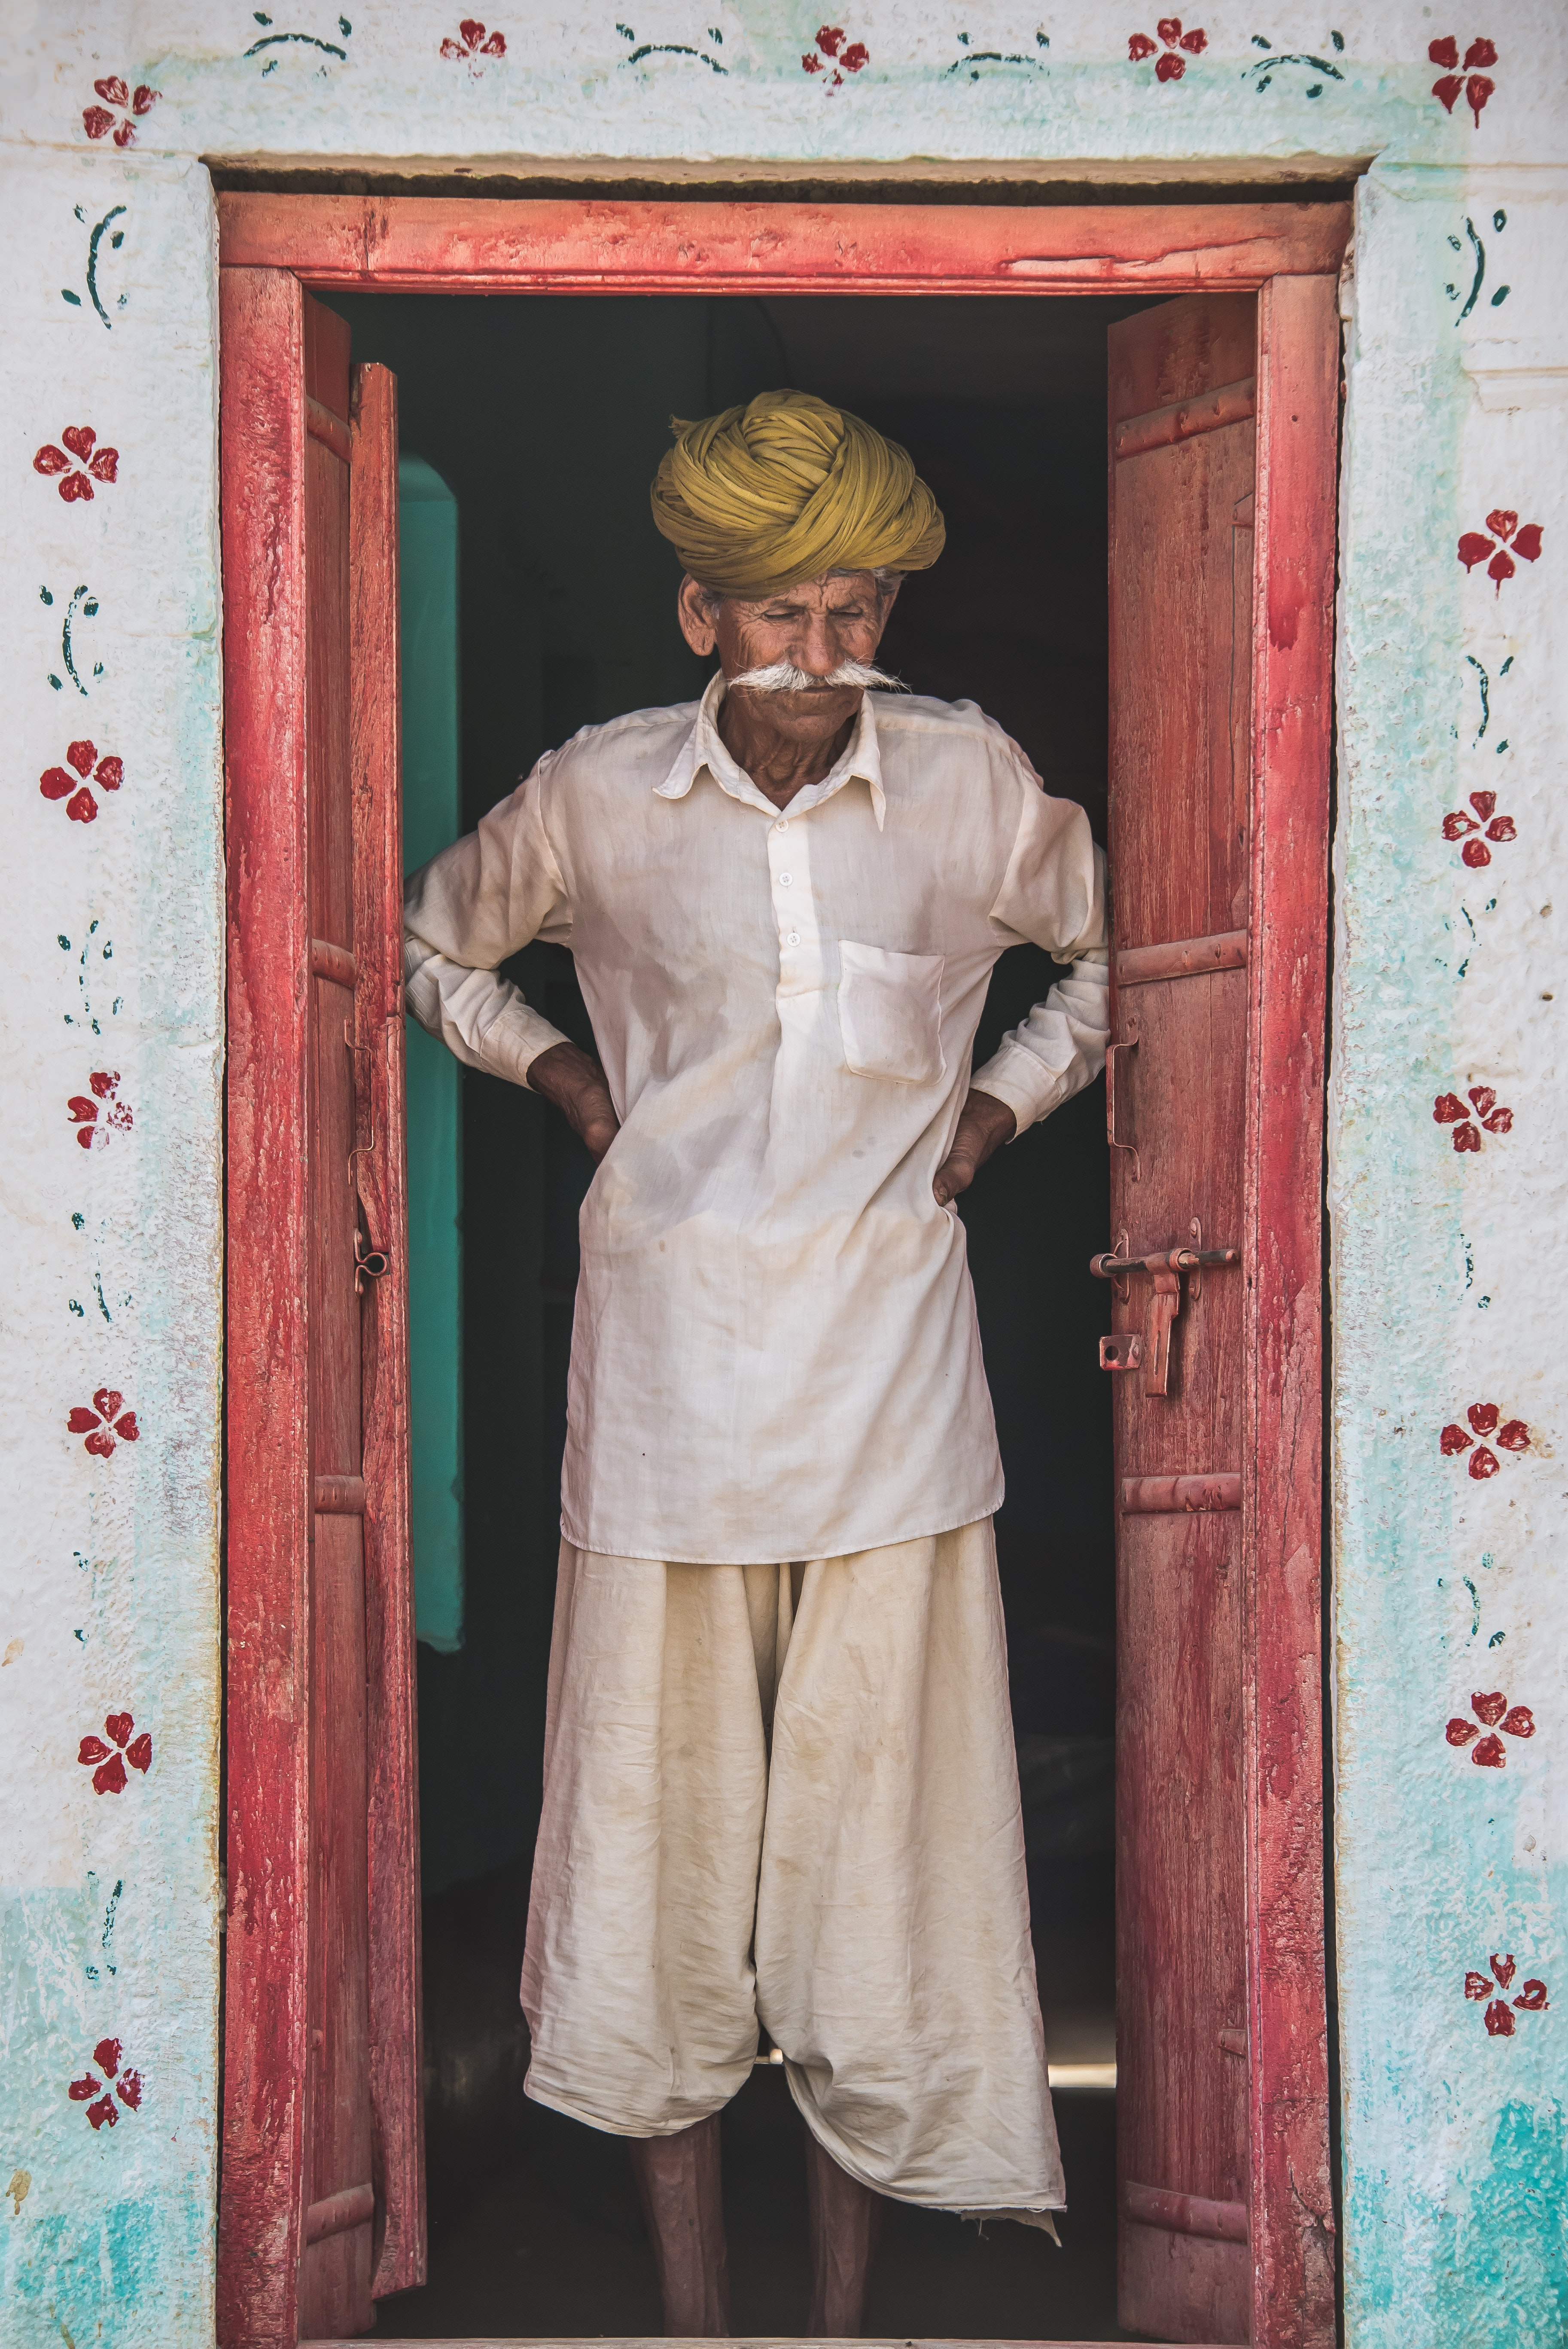 Indian man with flowy clothes and a yellow turban standing in a pink doorway with flower wallpaper on the walls